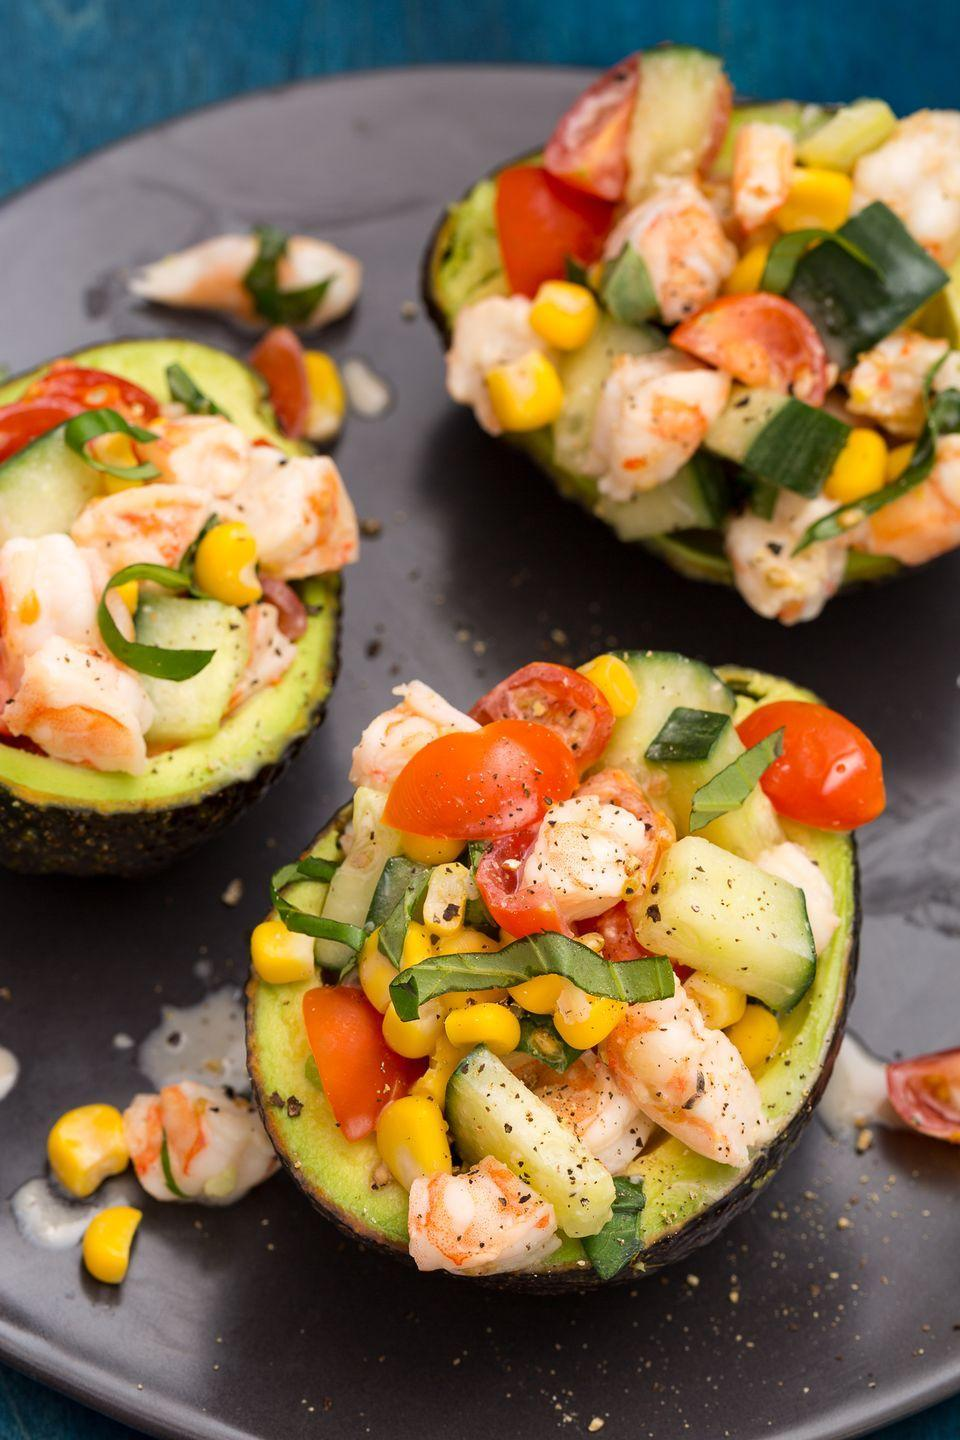 """<p>For a salty punch, top these babies off with crumbled feta. You deserve it.</p><p>Get the recipe from <a href=""""https://www.delish.com/cooking/recipe-ideas/recipes/a47066/shrimp-salad-stuffed-avocado-recipe/"""" rel=""""nofollow noopener"""" target=""""_blank"""" data-ylk=""""slk:Delish"""" class=""""link rapid-noclick-resp"""">Delish</a>.</p>"""